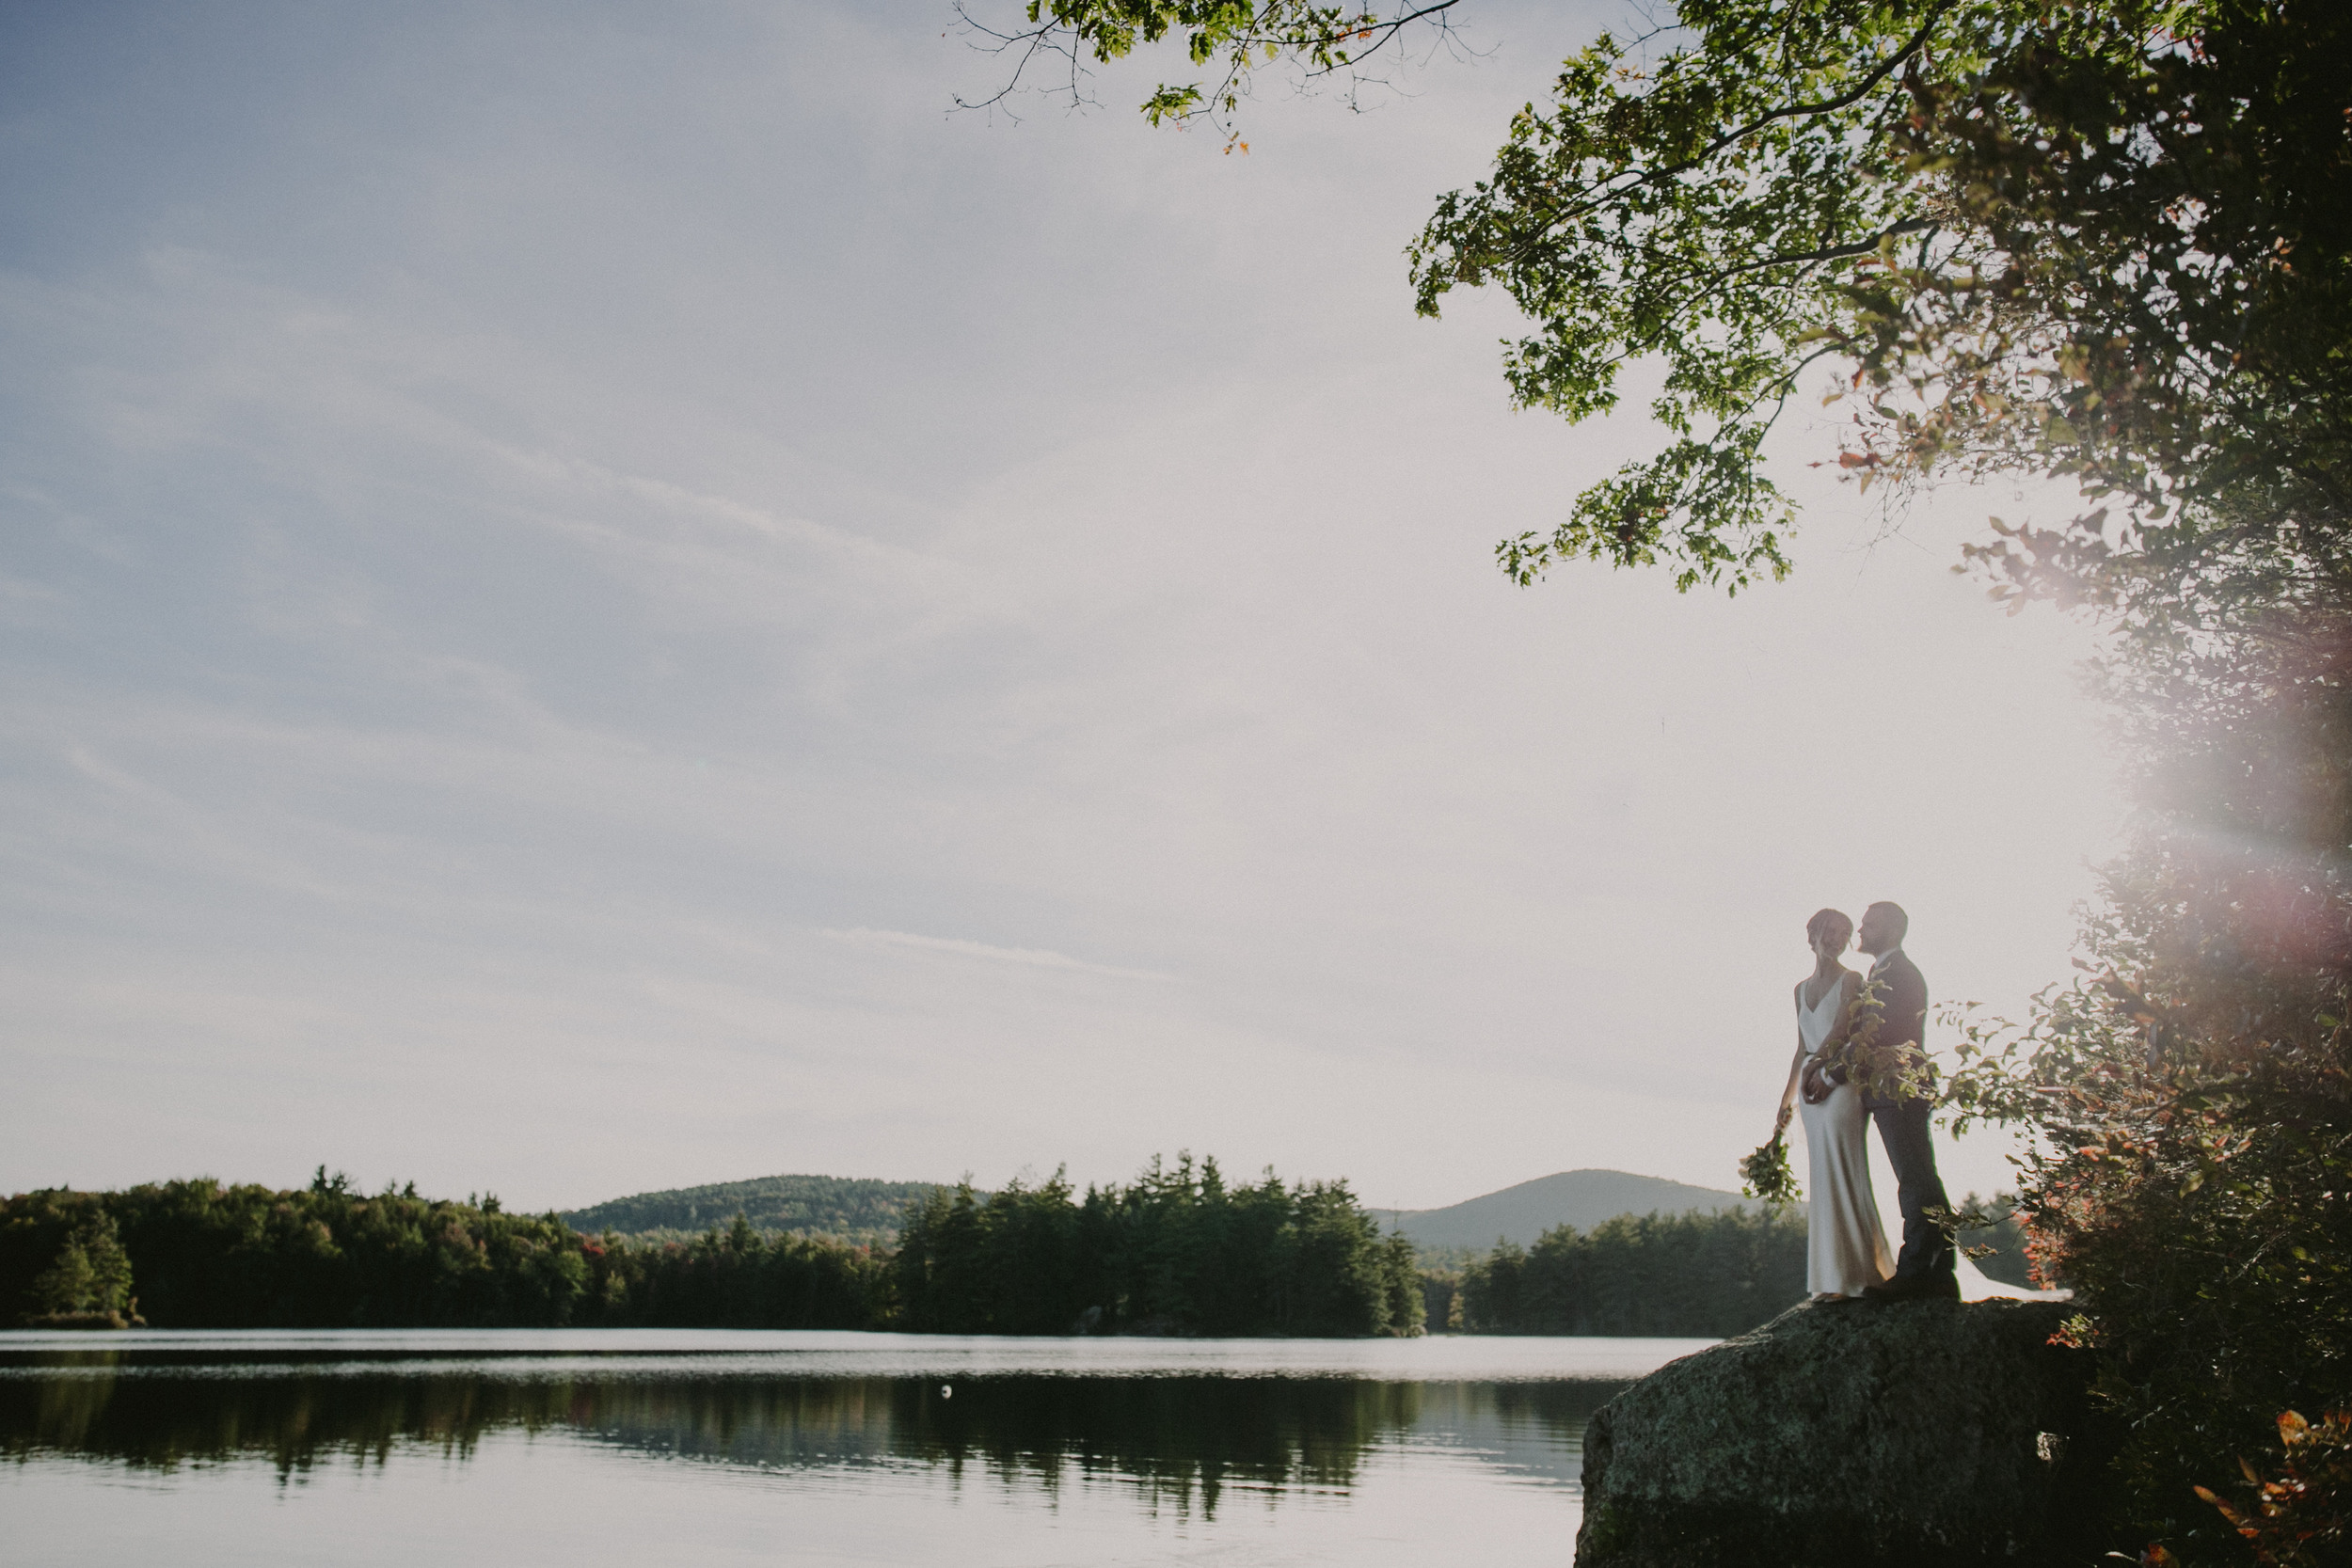 windsor mountain summer camp wedding NH chellise michael photography 1792.jpg